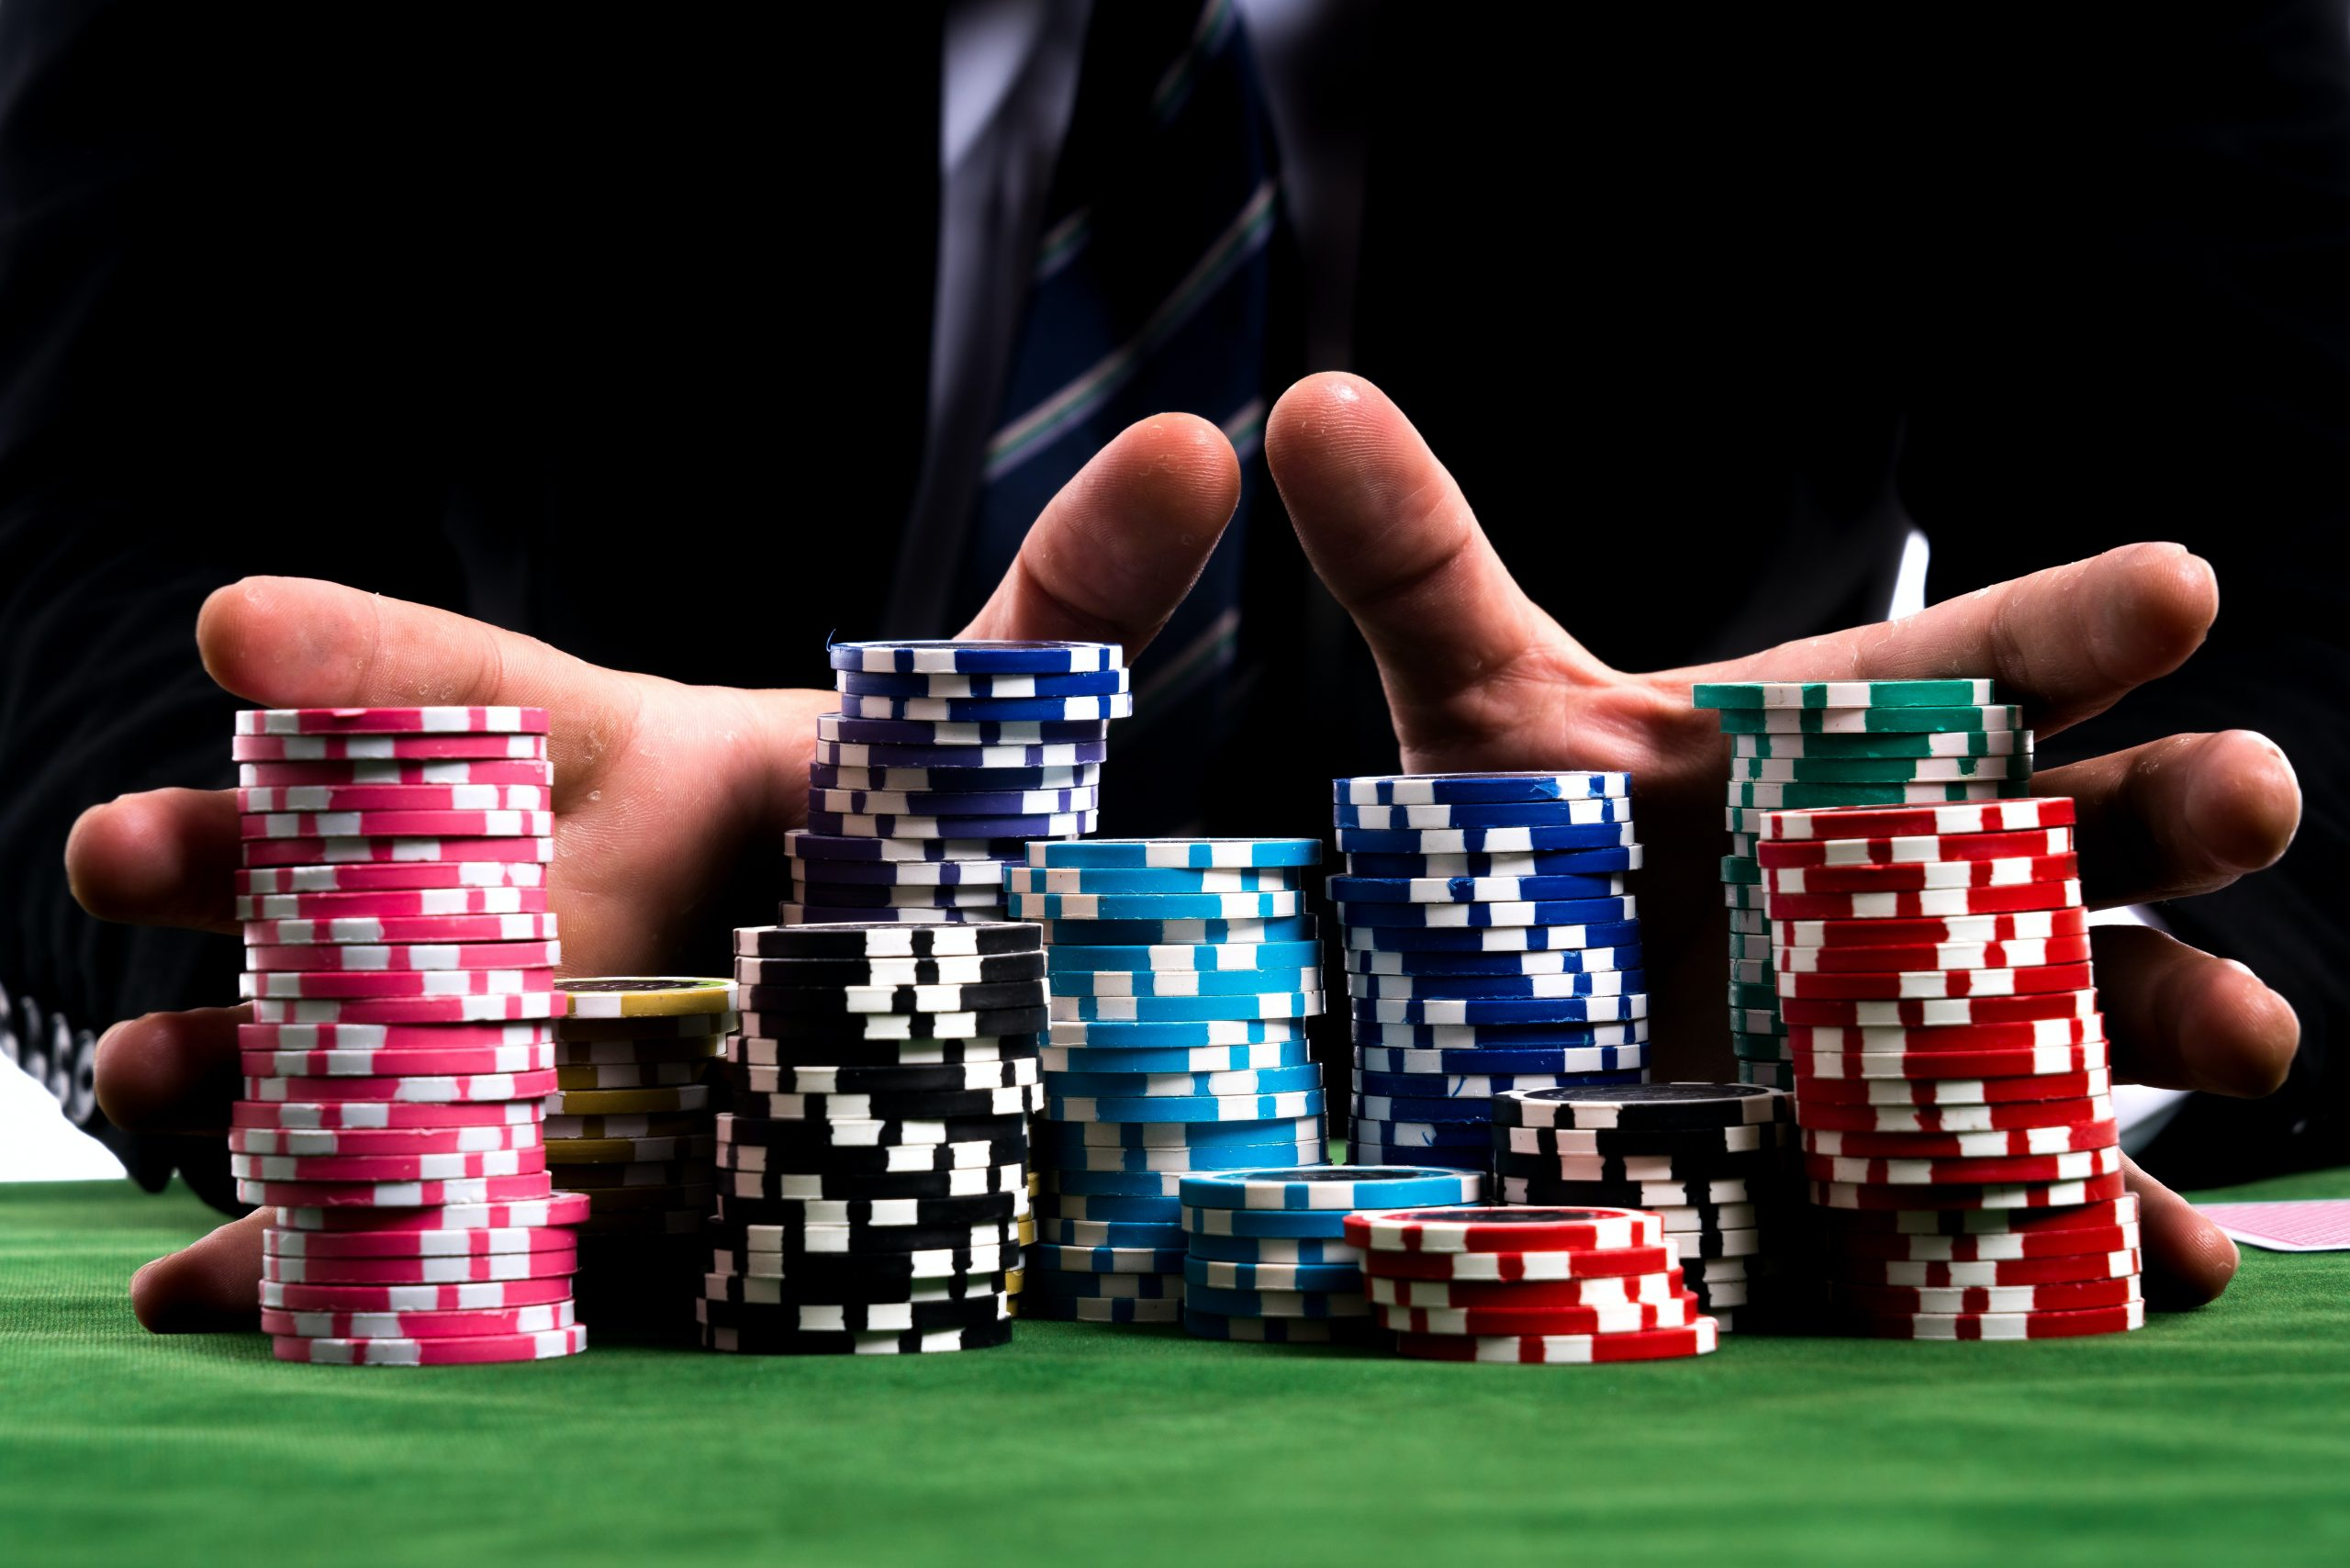 Finest Online Gambling Sites USA - Legal Gambling Guide